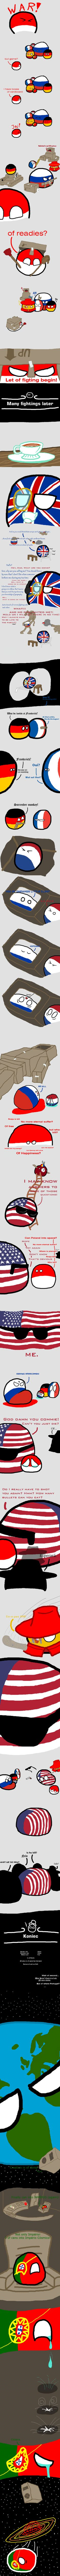 War? >> Poland is reversed. It should be white-red not red-white but it's still great